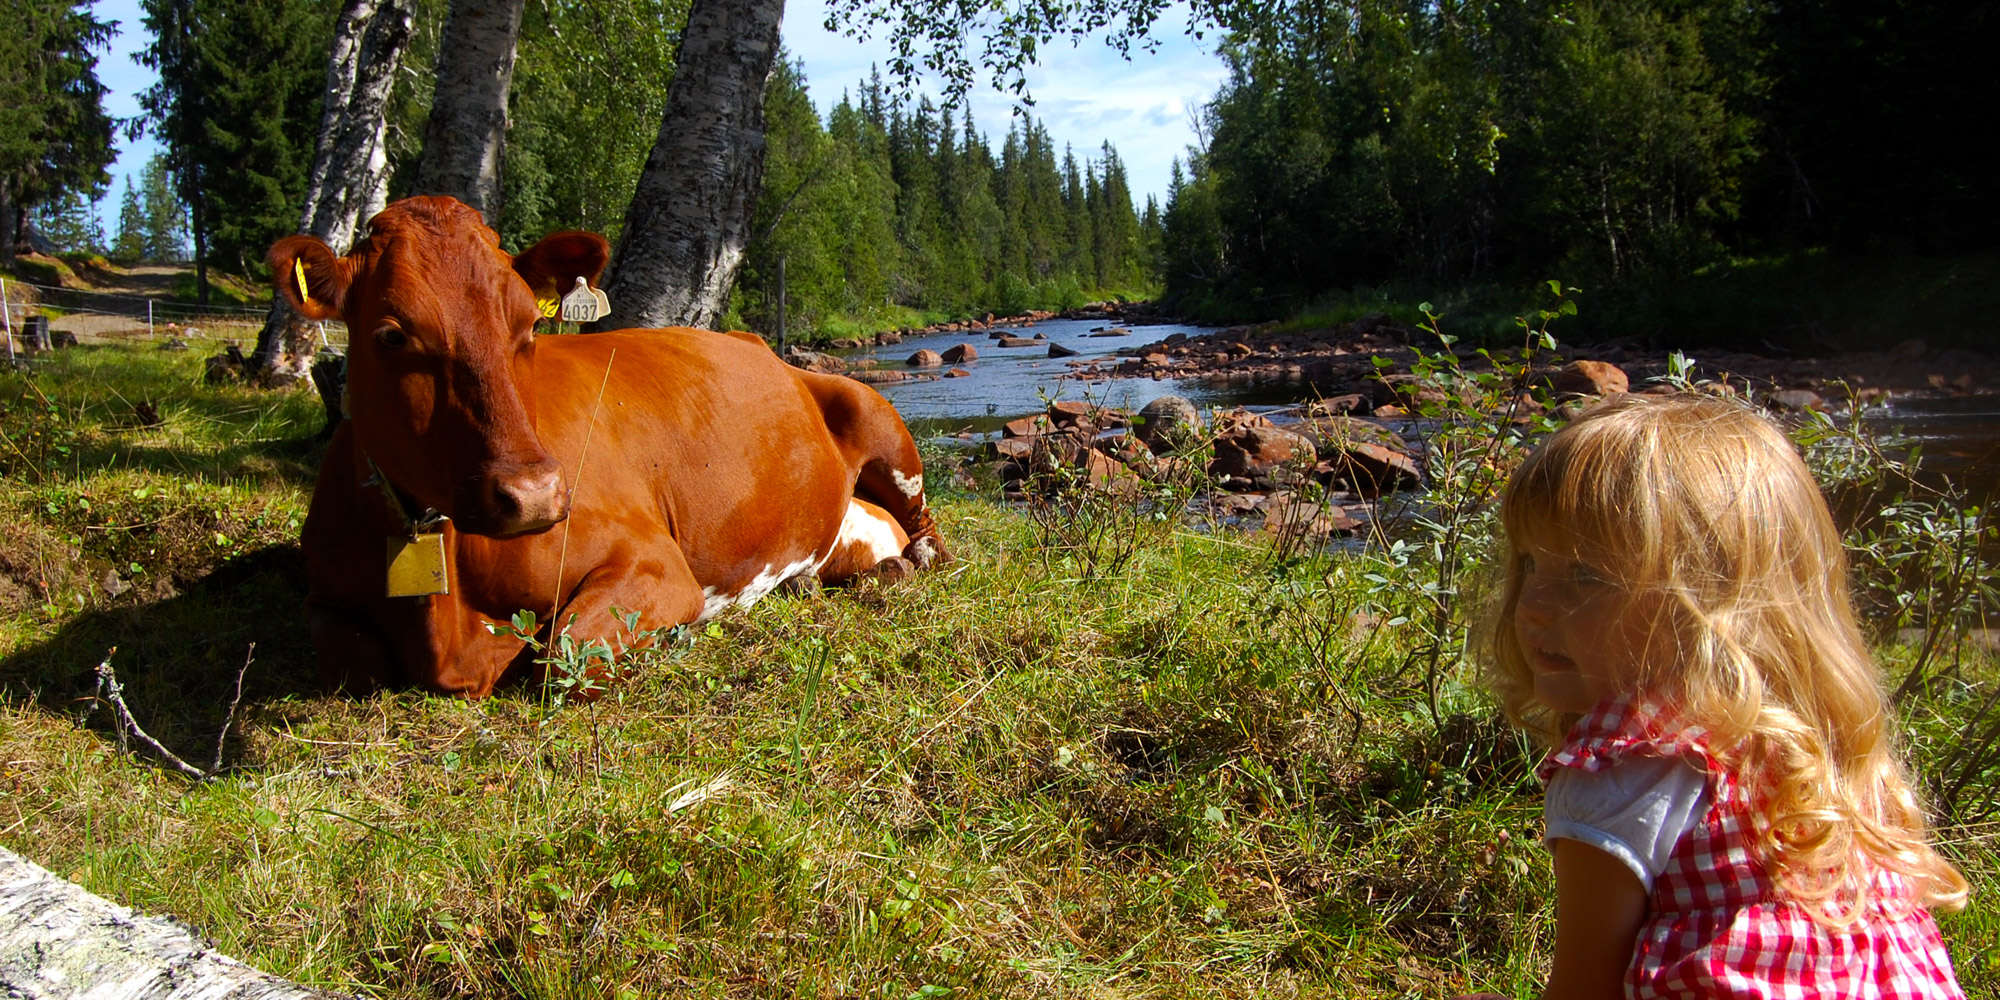 A littel girl watching over one of the cows at Holsingseteren summer mountain farm in Snåsa. Copyright: Holsingseteren